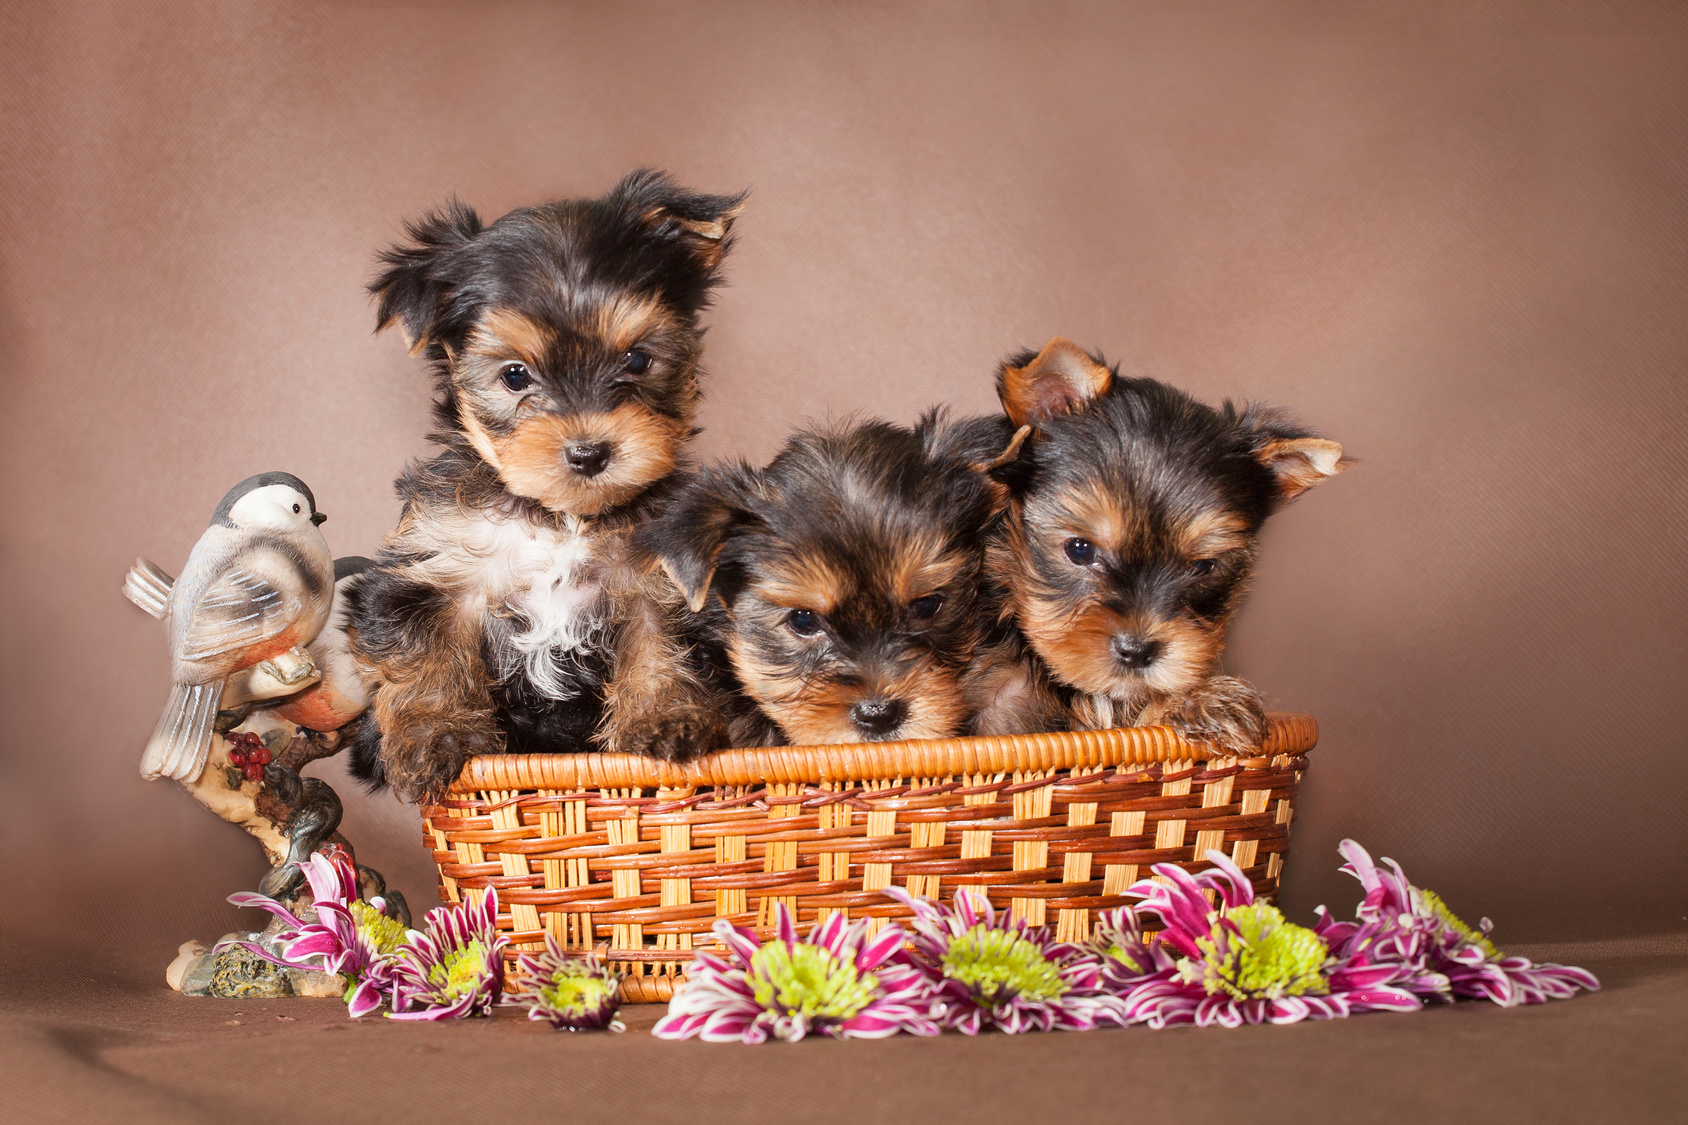 Rainbow creek kennels, yorkies, dog, breeder, rainbow-creek, dog-breeder, south butler, ny, new york, for, sale, puppies, puppy, pups, inspected, insp